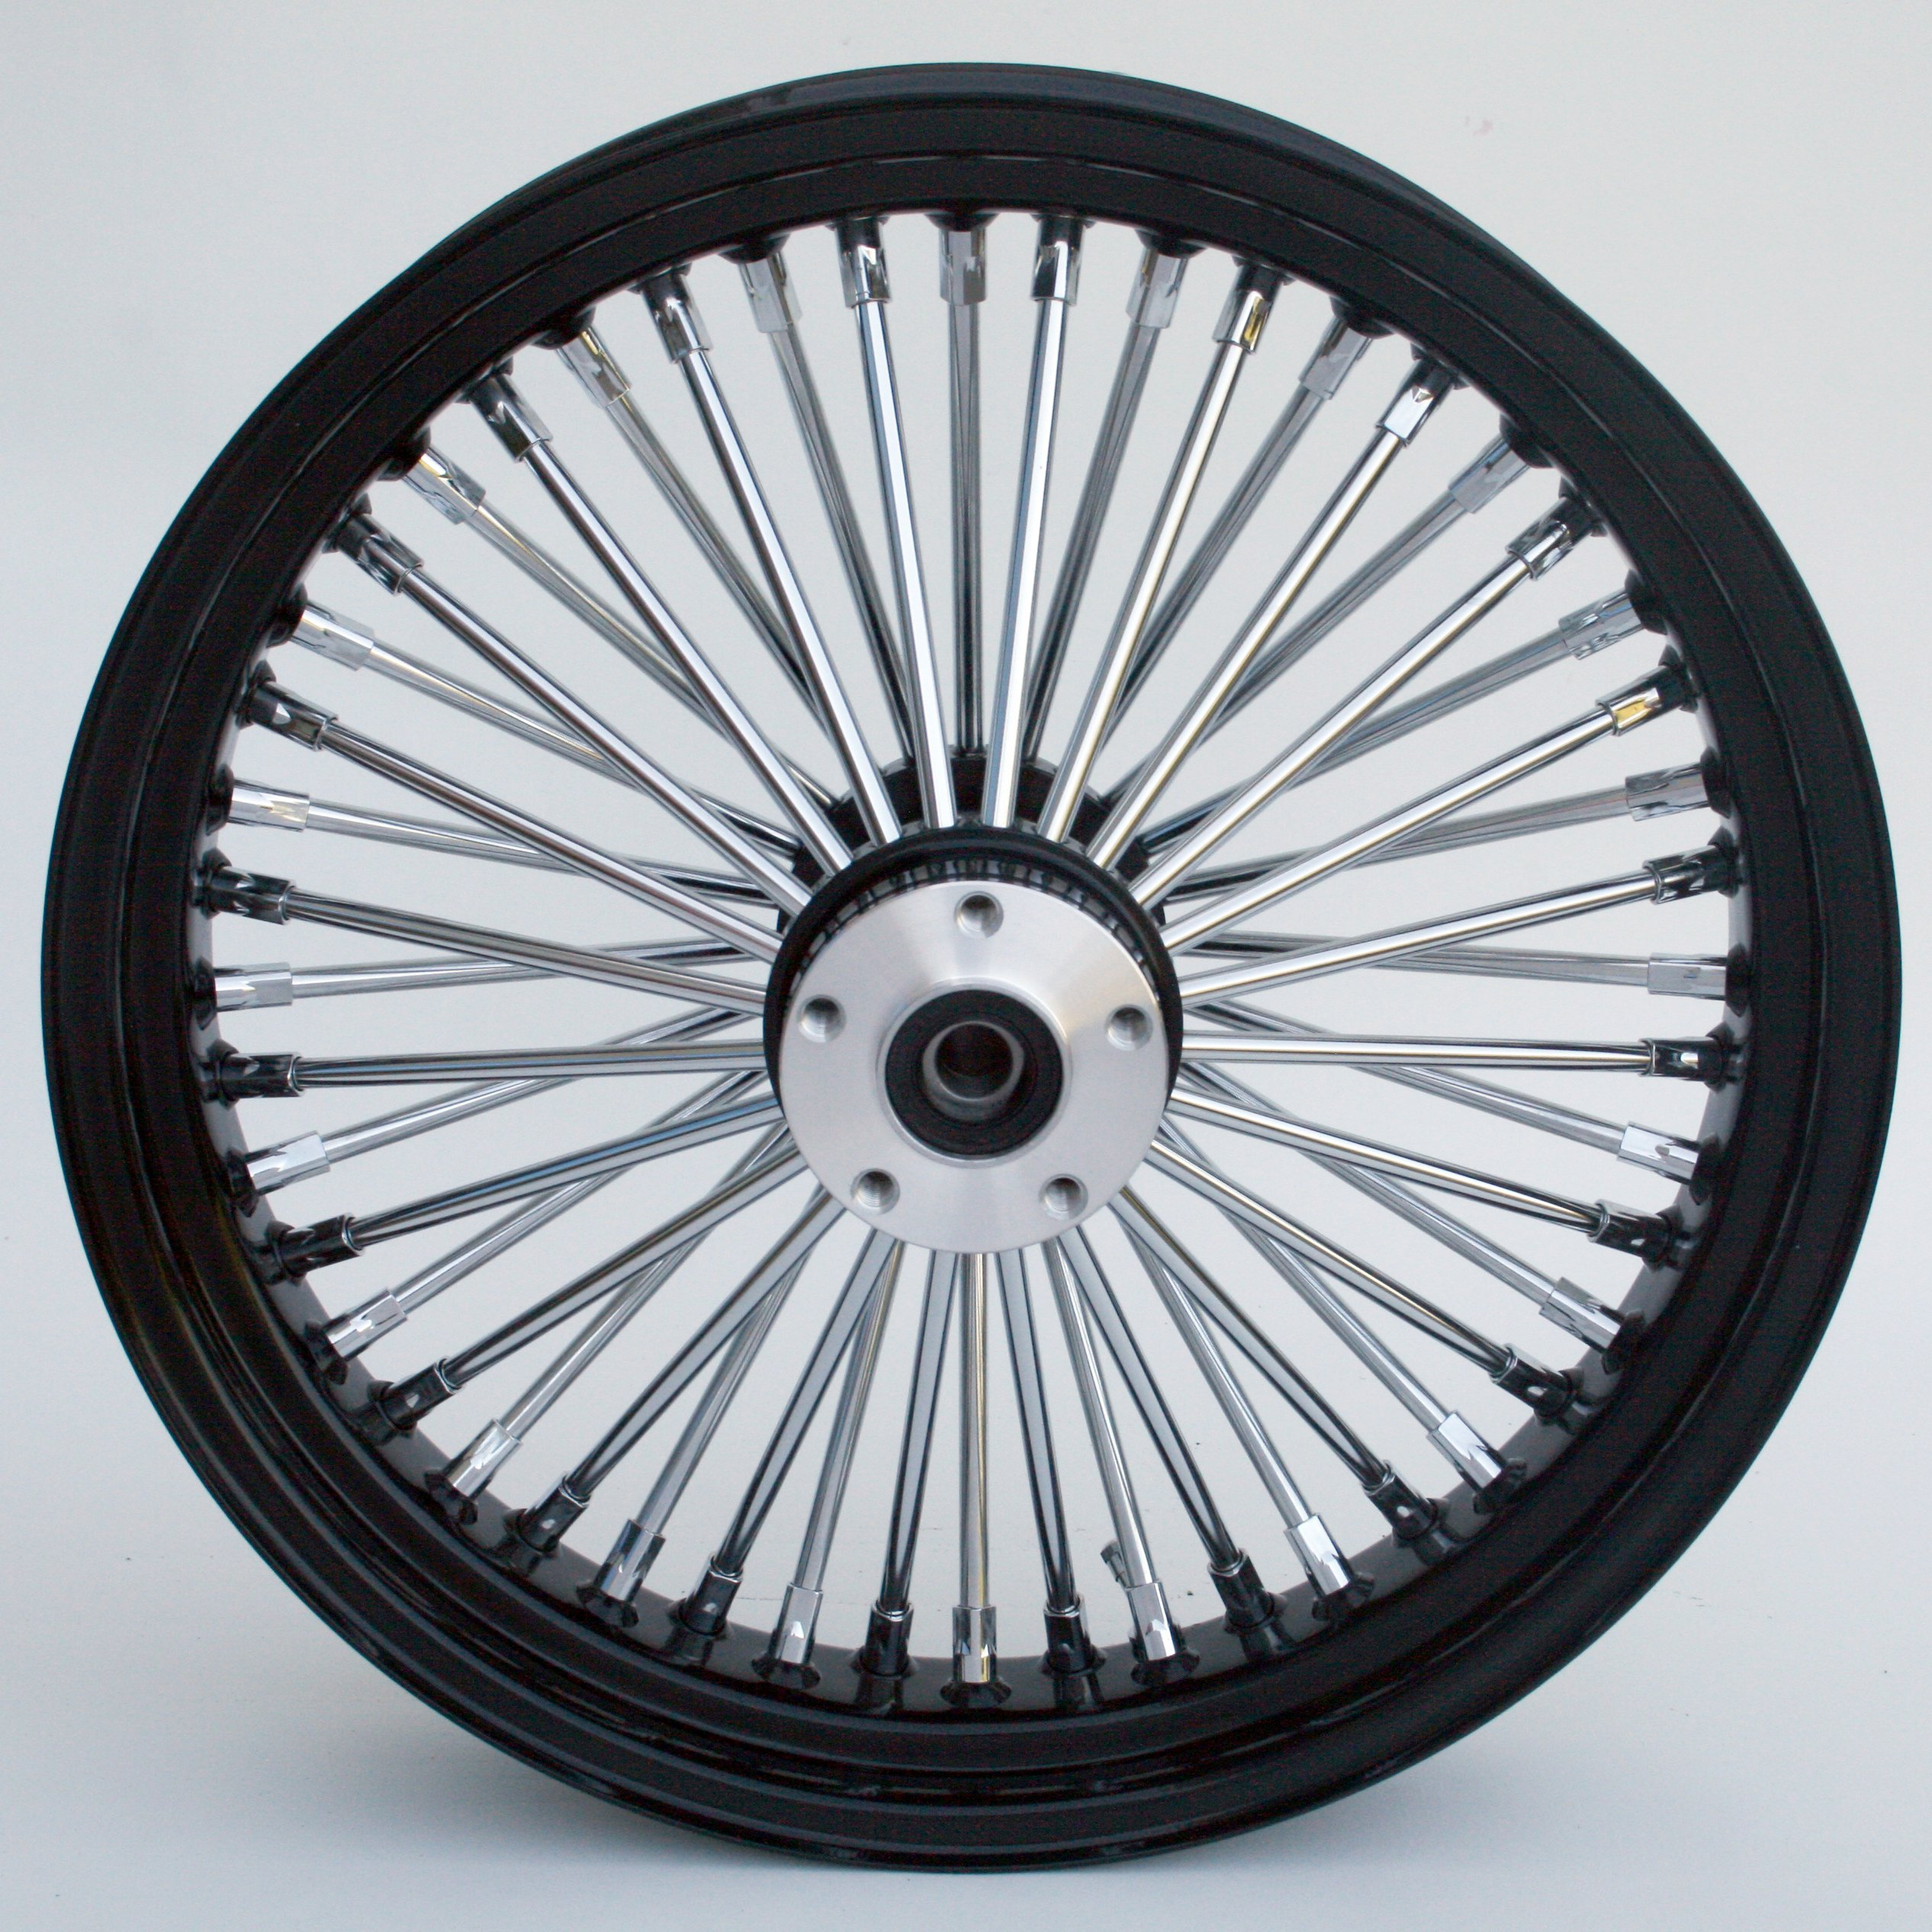 Black and Chrome Ultima King Spoke 18'' x 5.5'' Rear Wheel for 200 Series Frames and Custom Applications